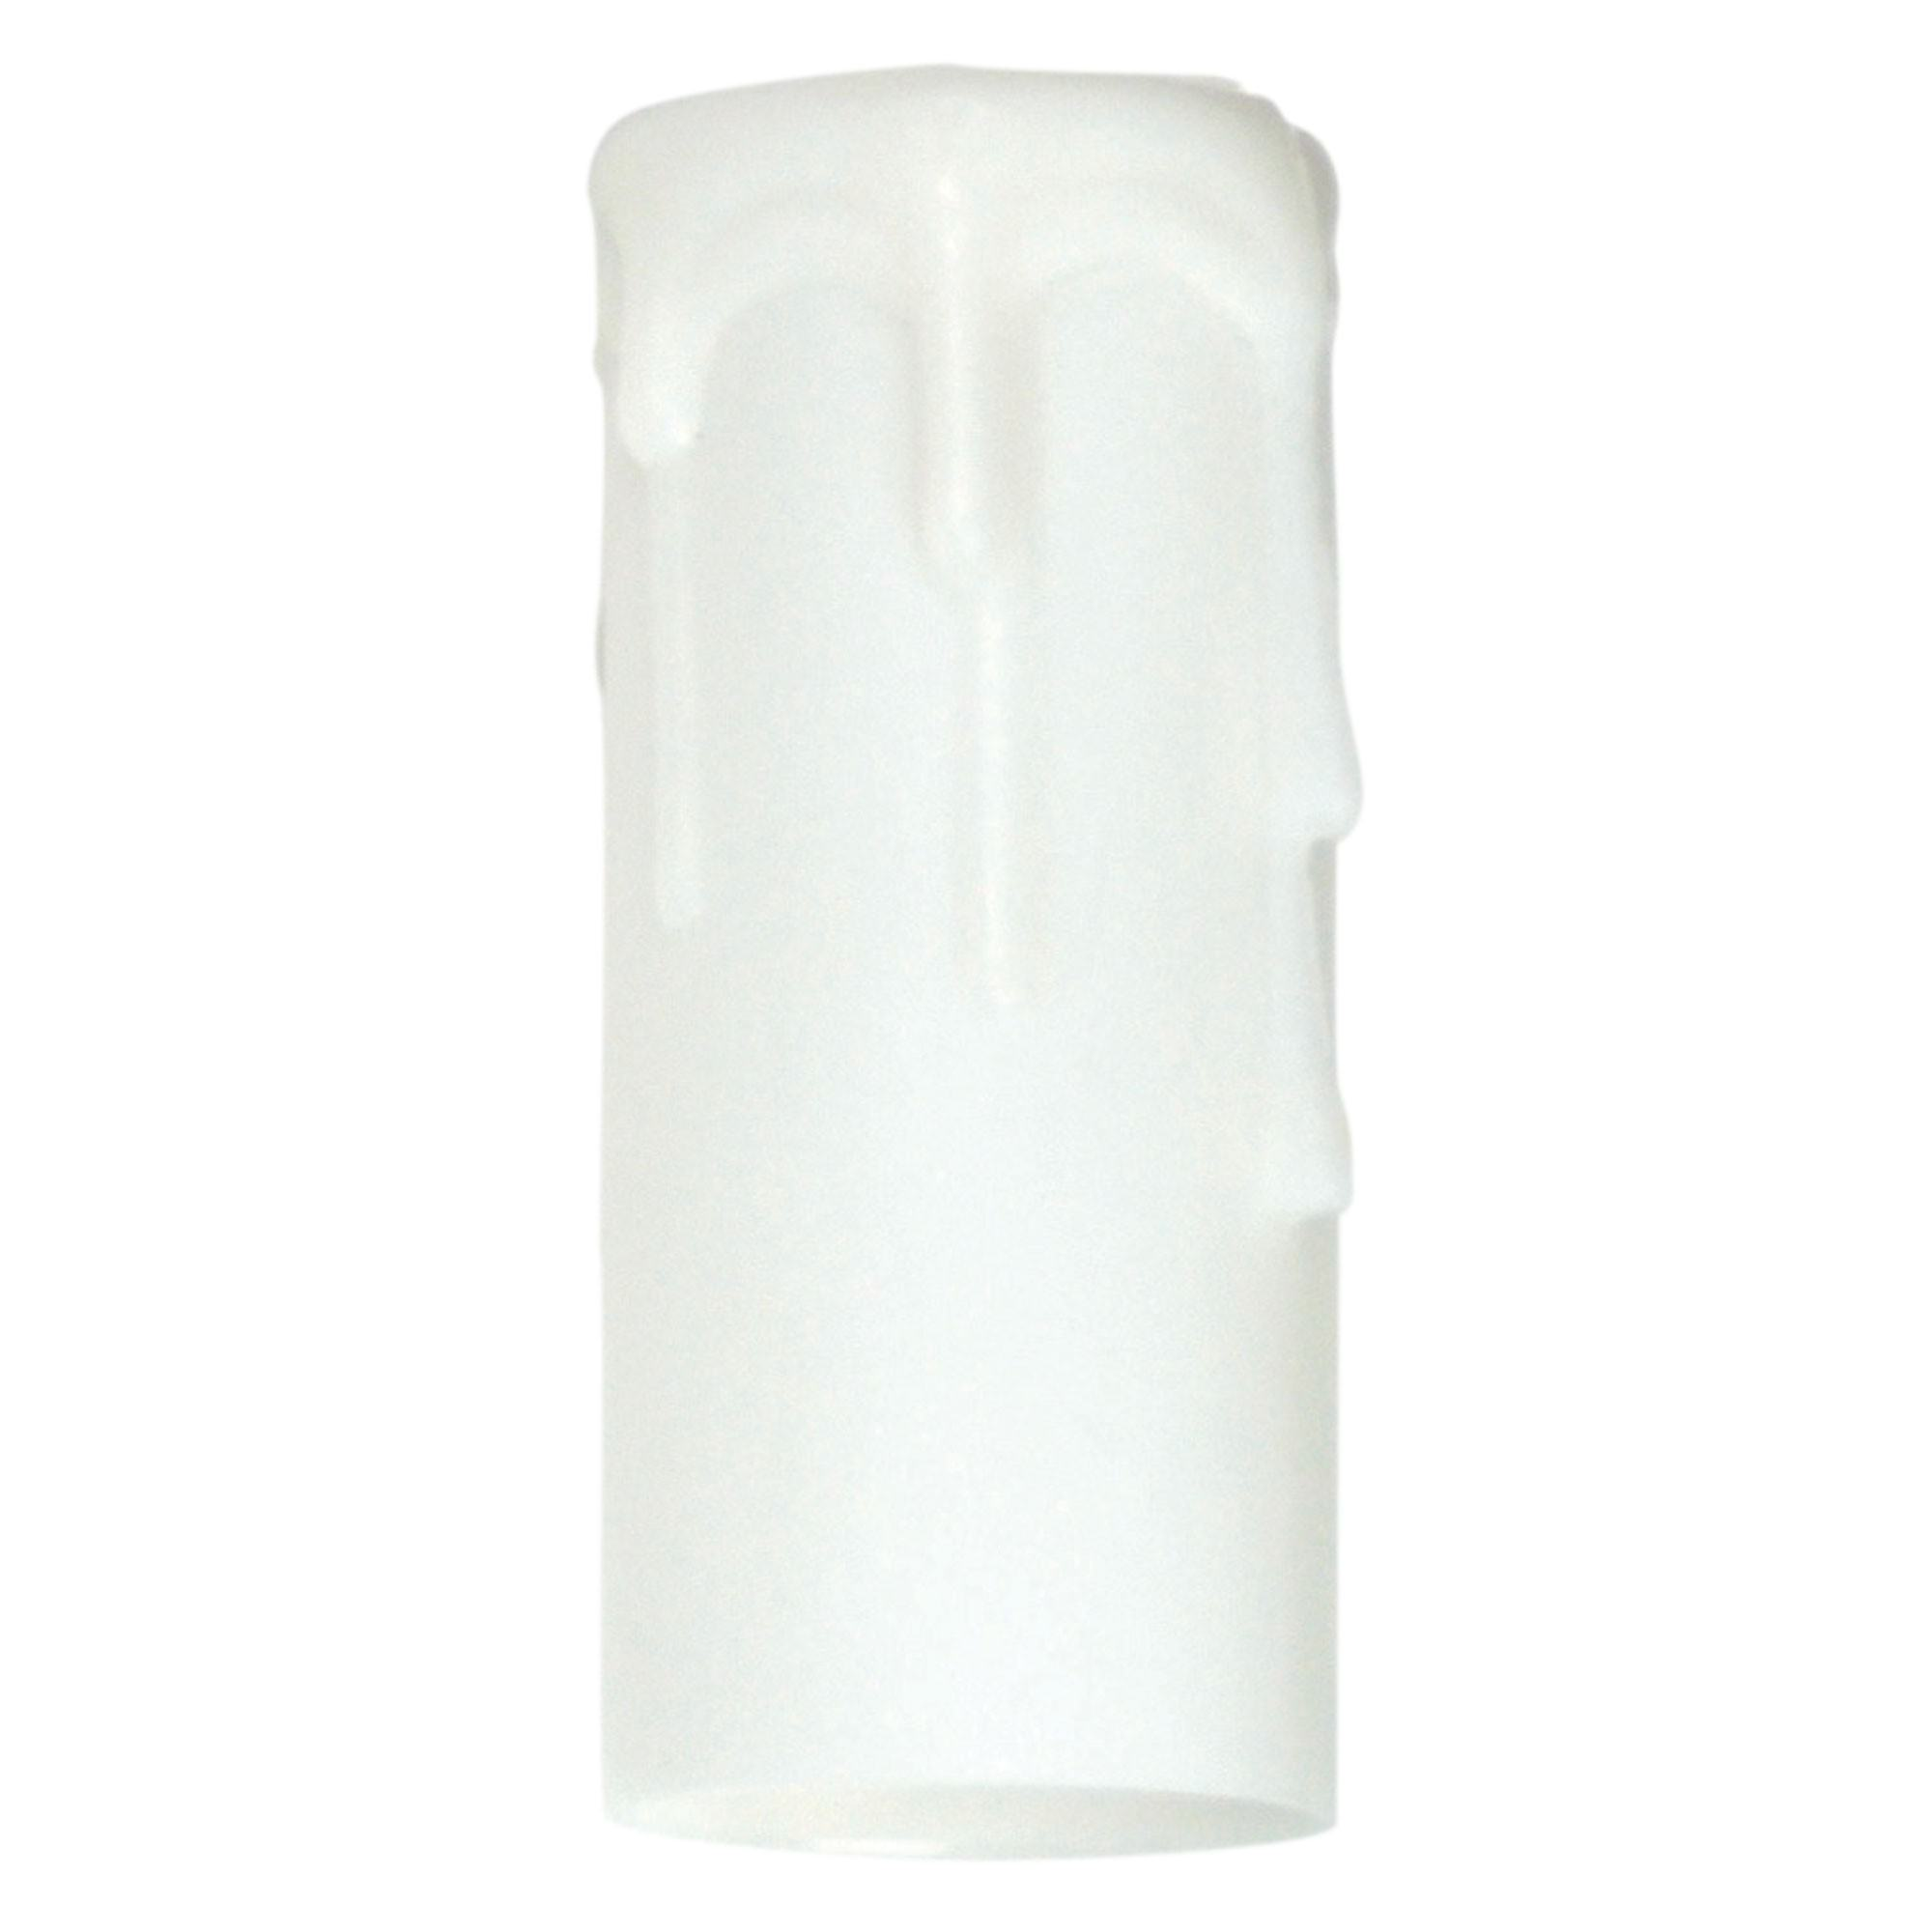 Cathy Candle Drip Lampholder Cover